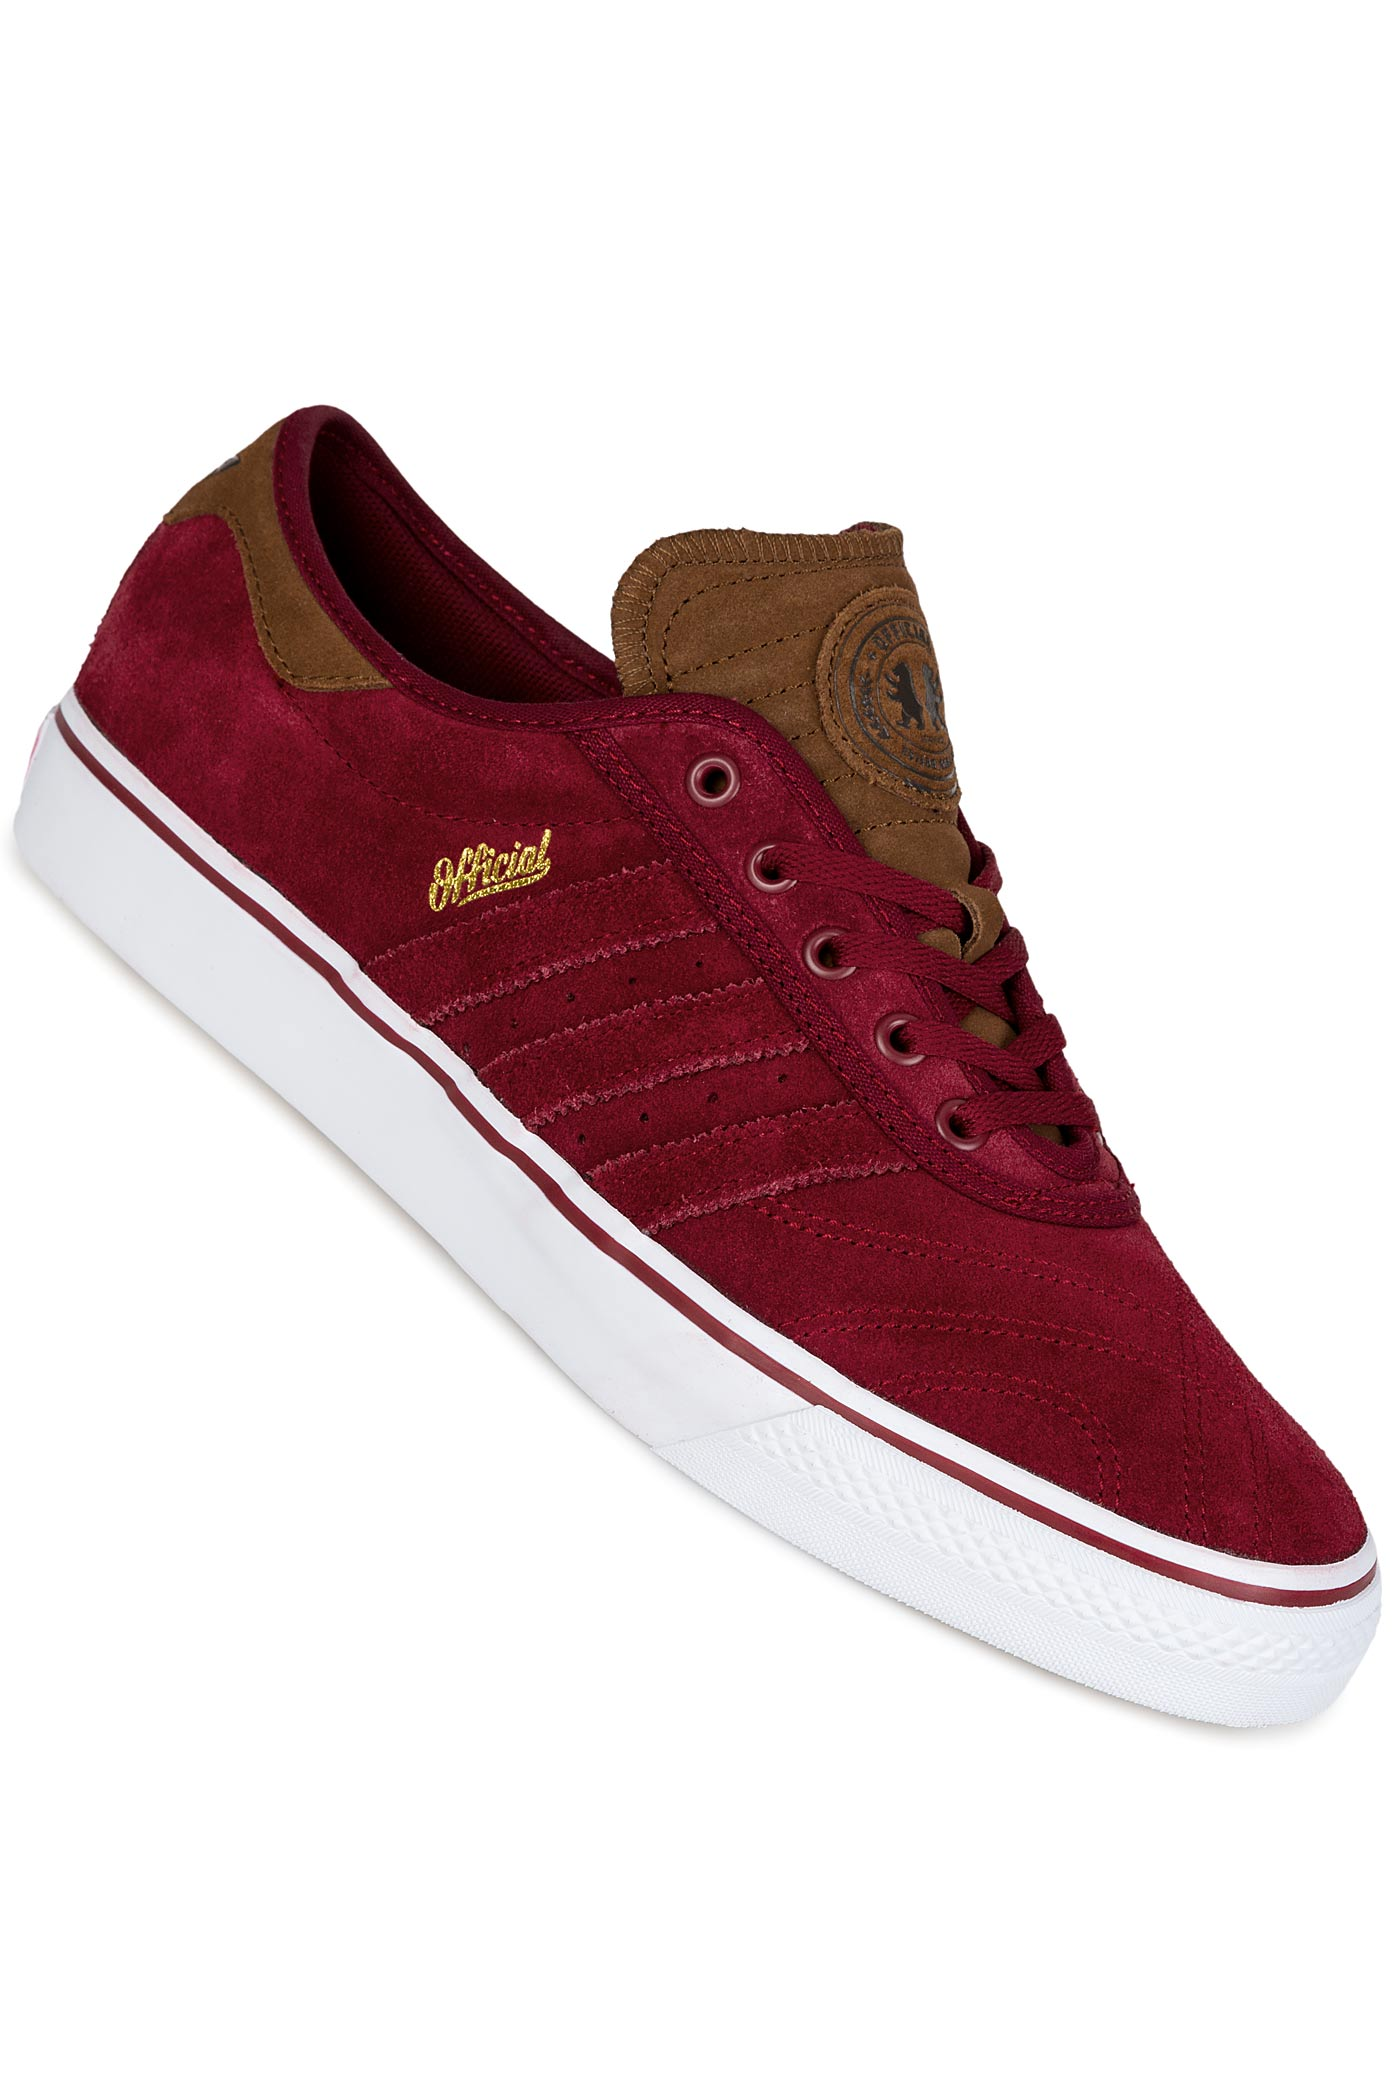 official photos 227e0 c6526 adidas Skateboarding x Official Adi Ease Premiere ADV Shoe (burgundy white)